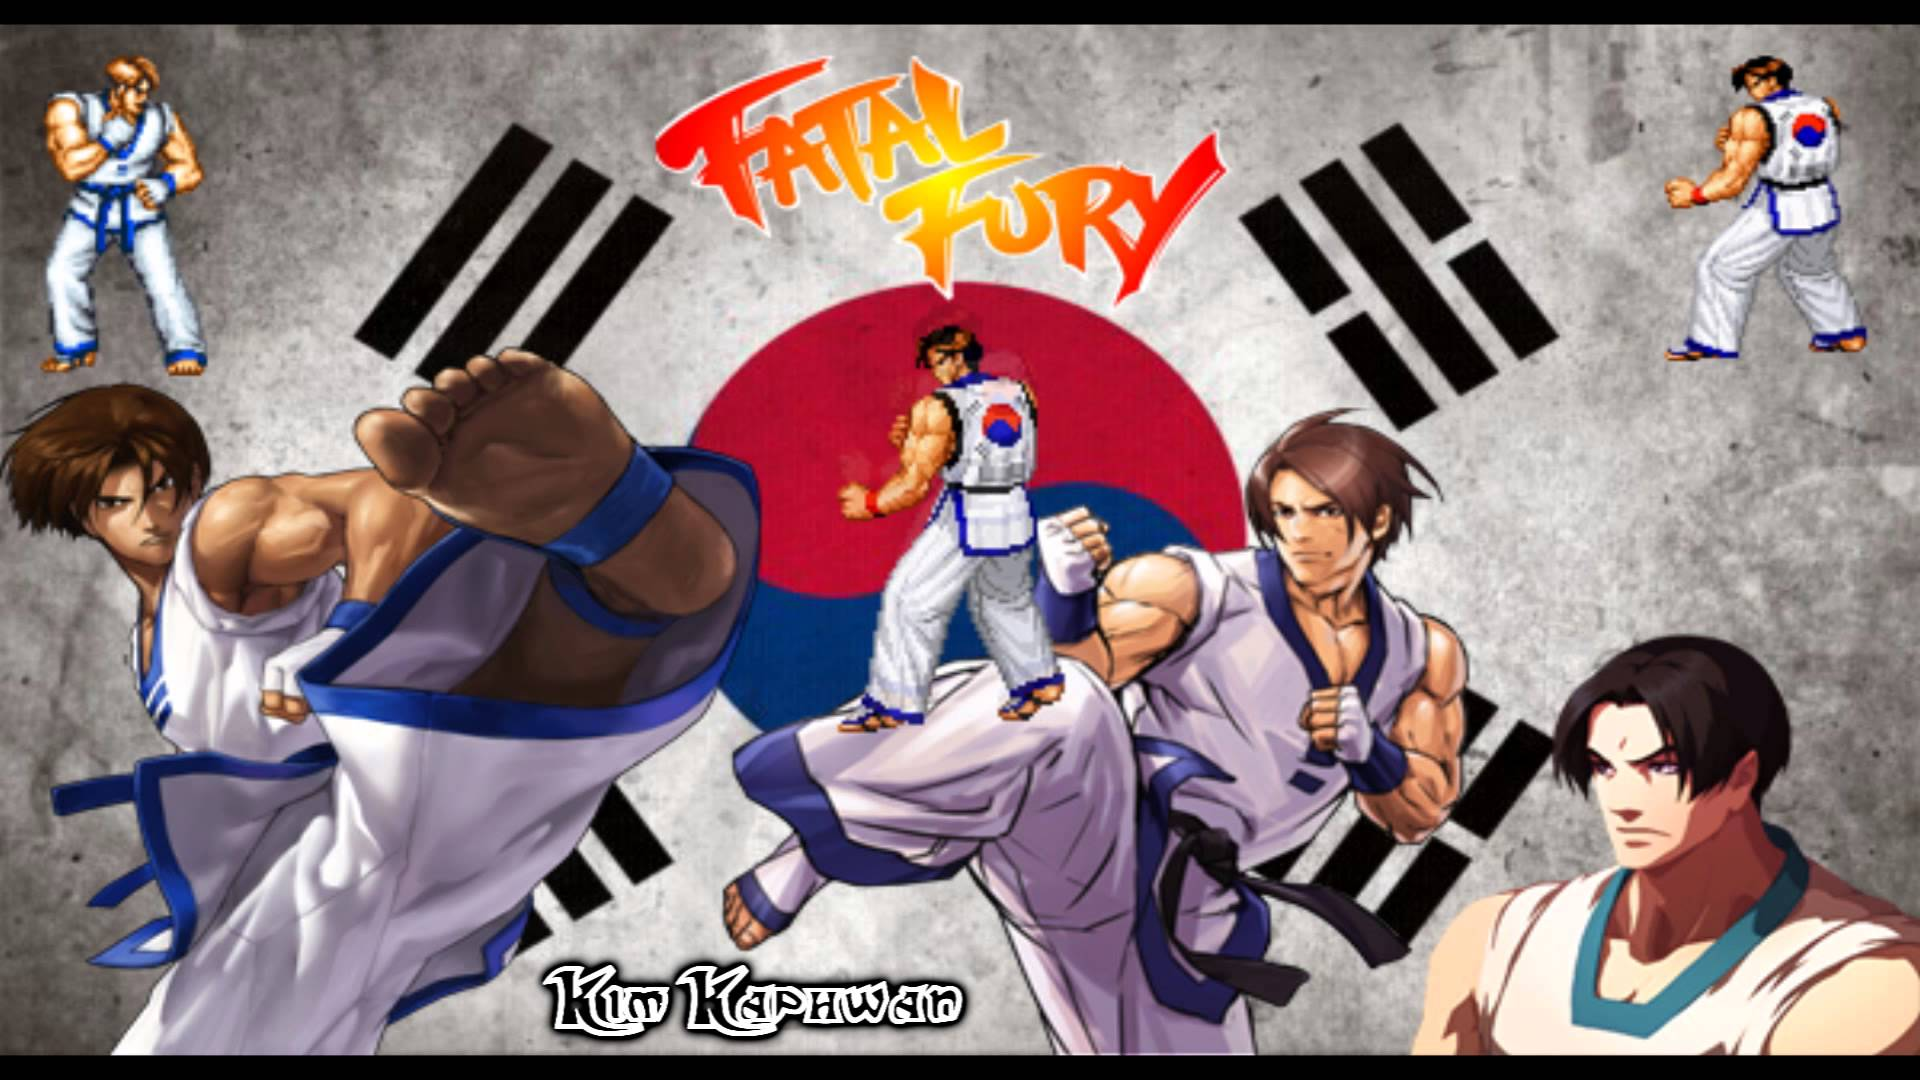 fatal fury wallpapers wallpaper cave fatal fury wallpapers wallpaper cave